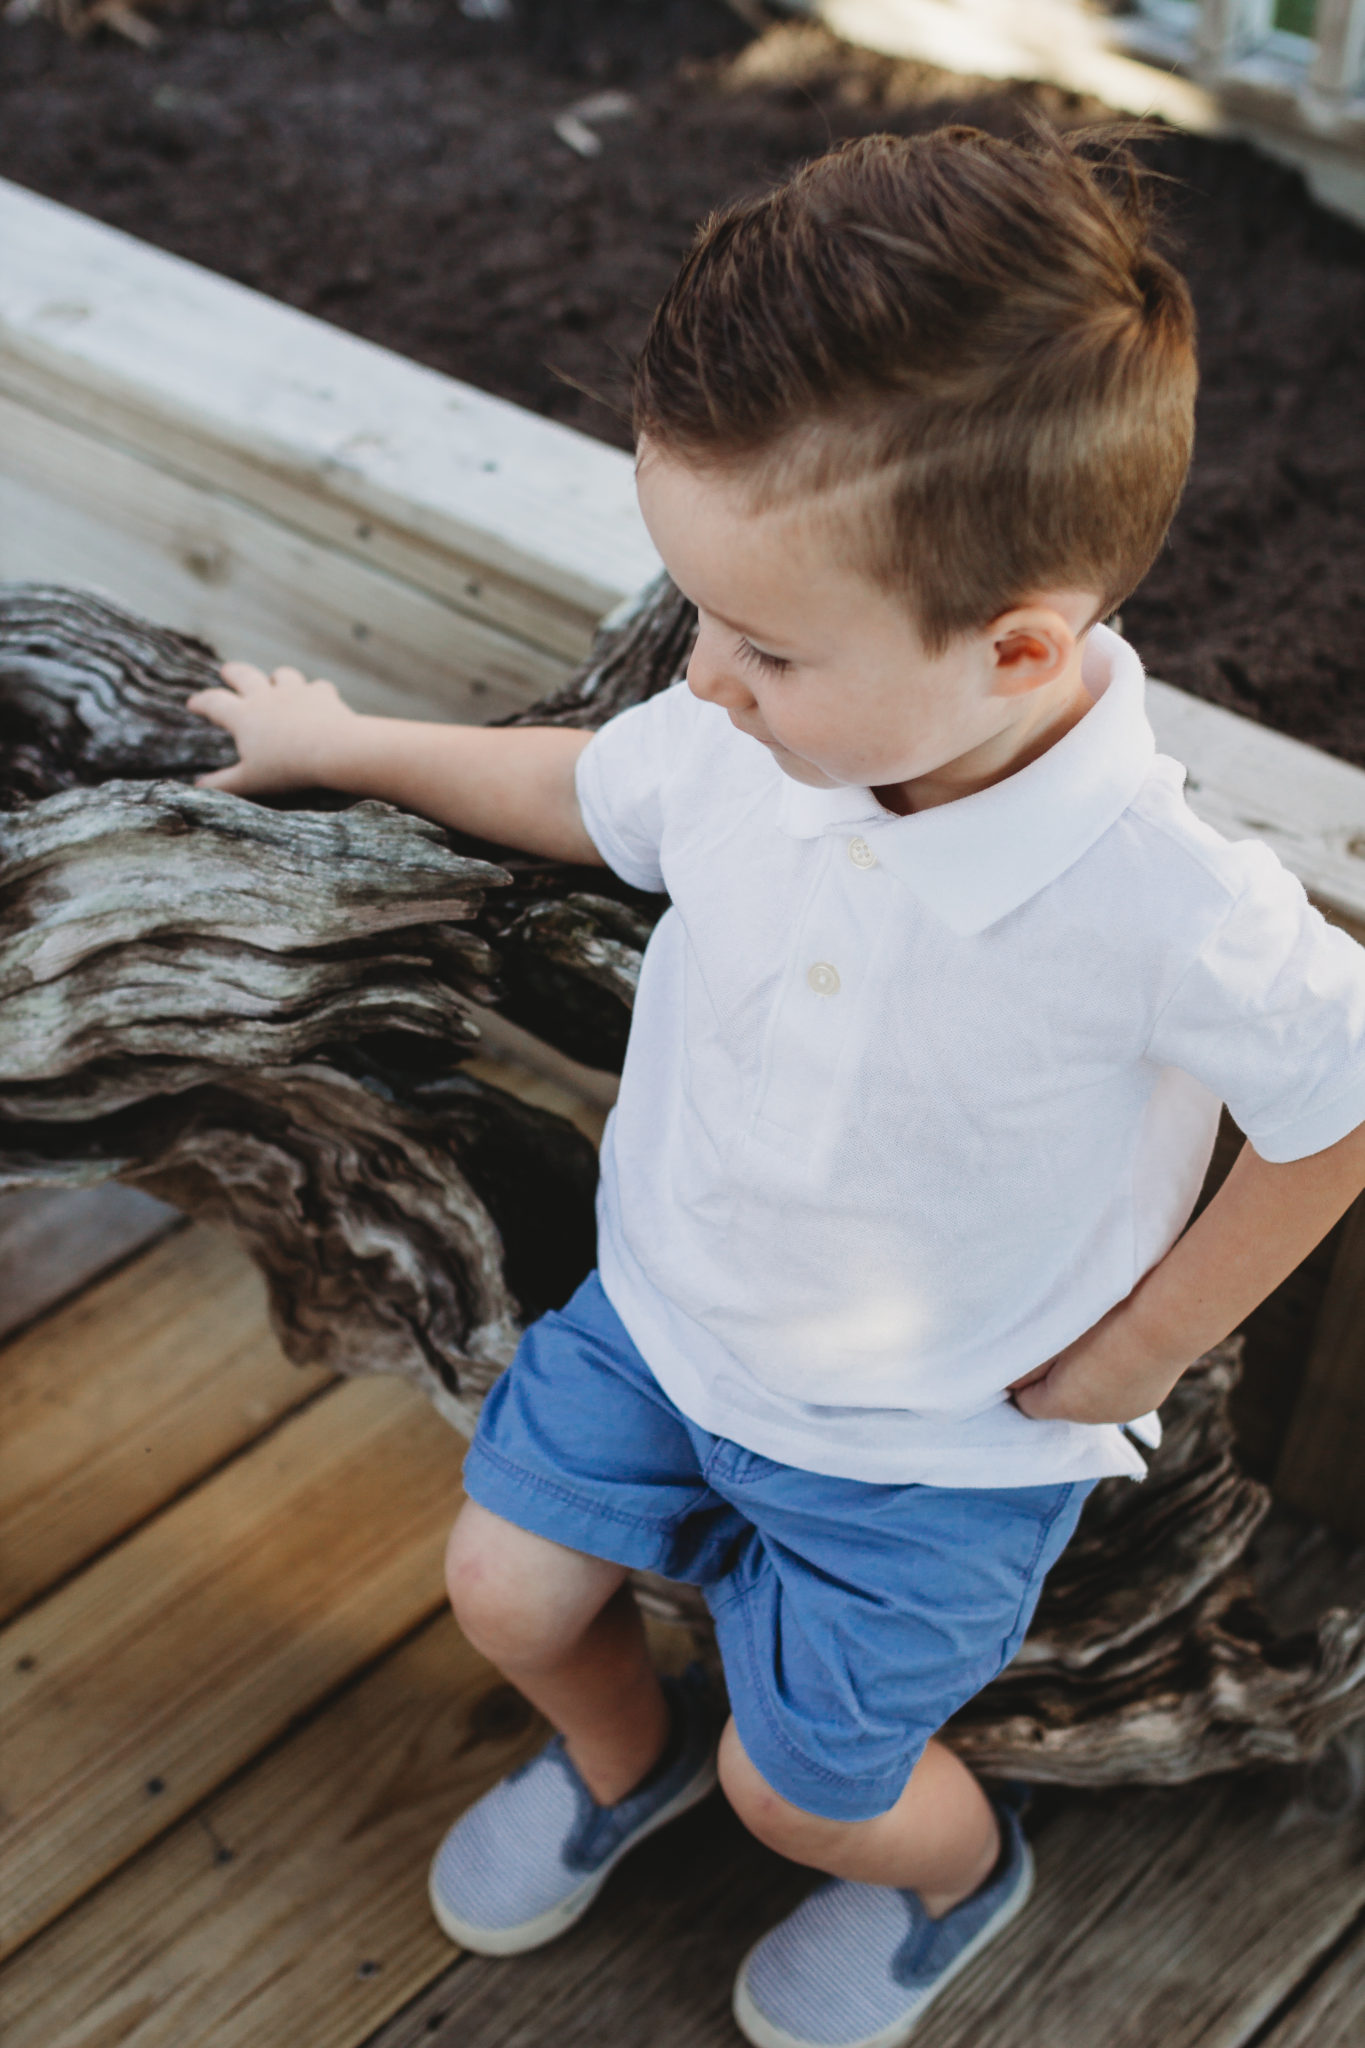 #ad #BringtheFun #OshKoshKids toddler spring fashion, style for toddlers, spring fashion for preschoolers, kids spring and summer fashion with OshKosh B'gosh